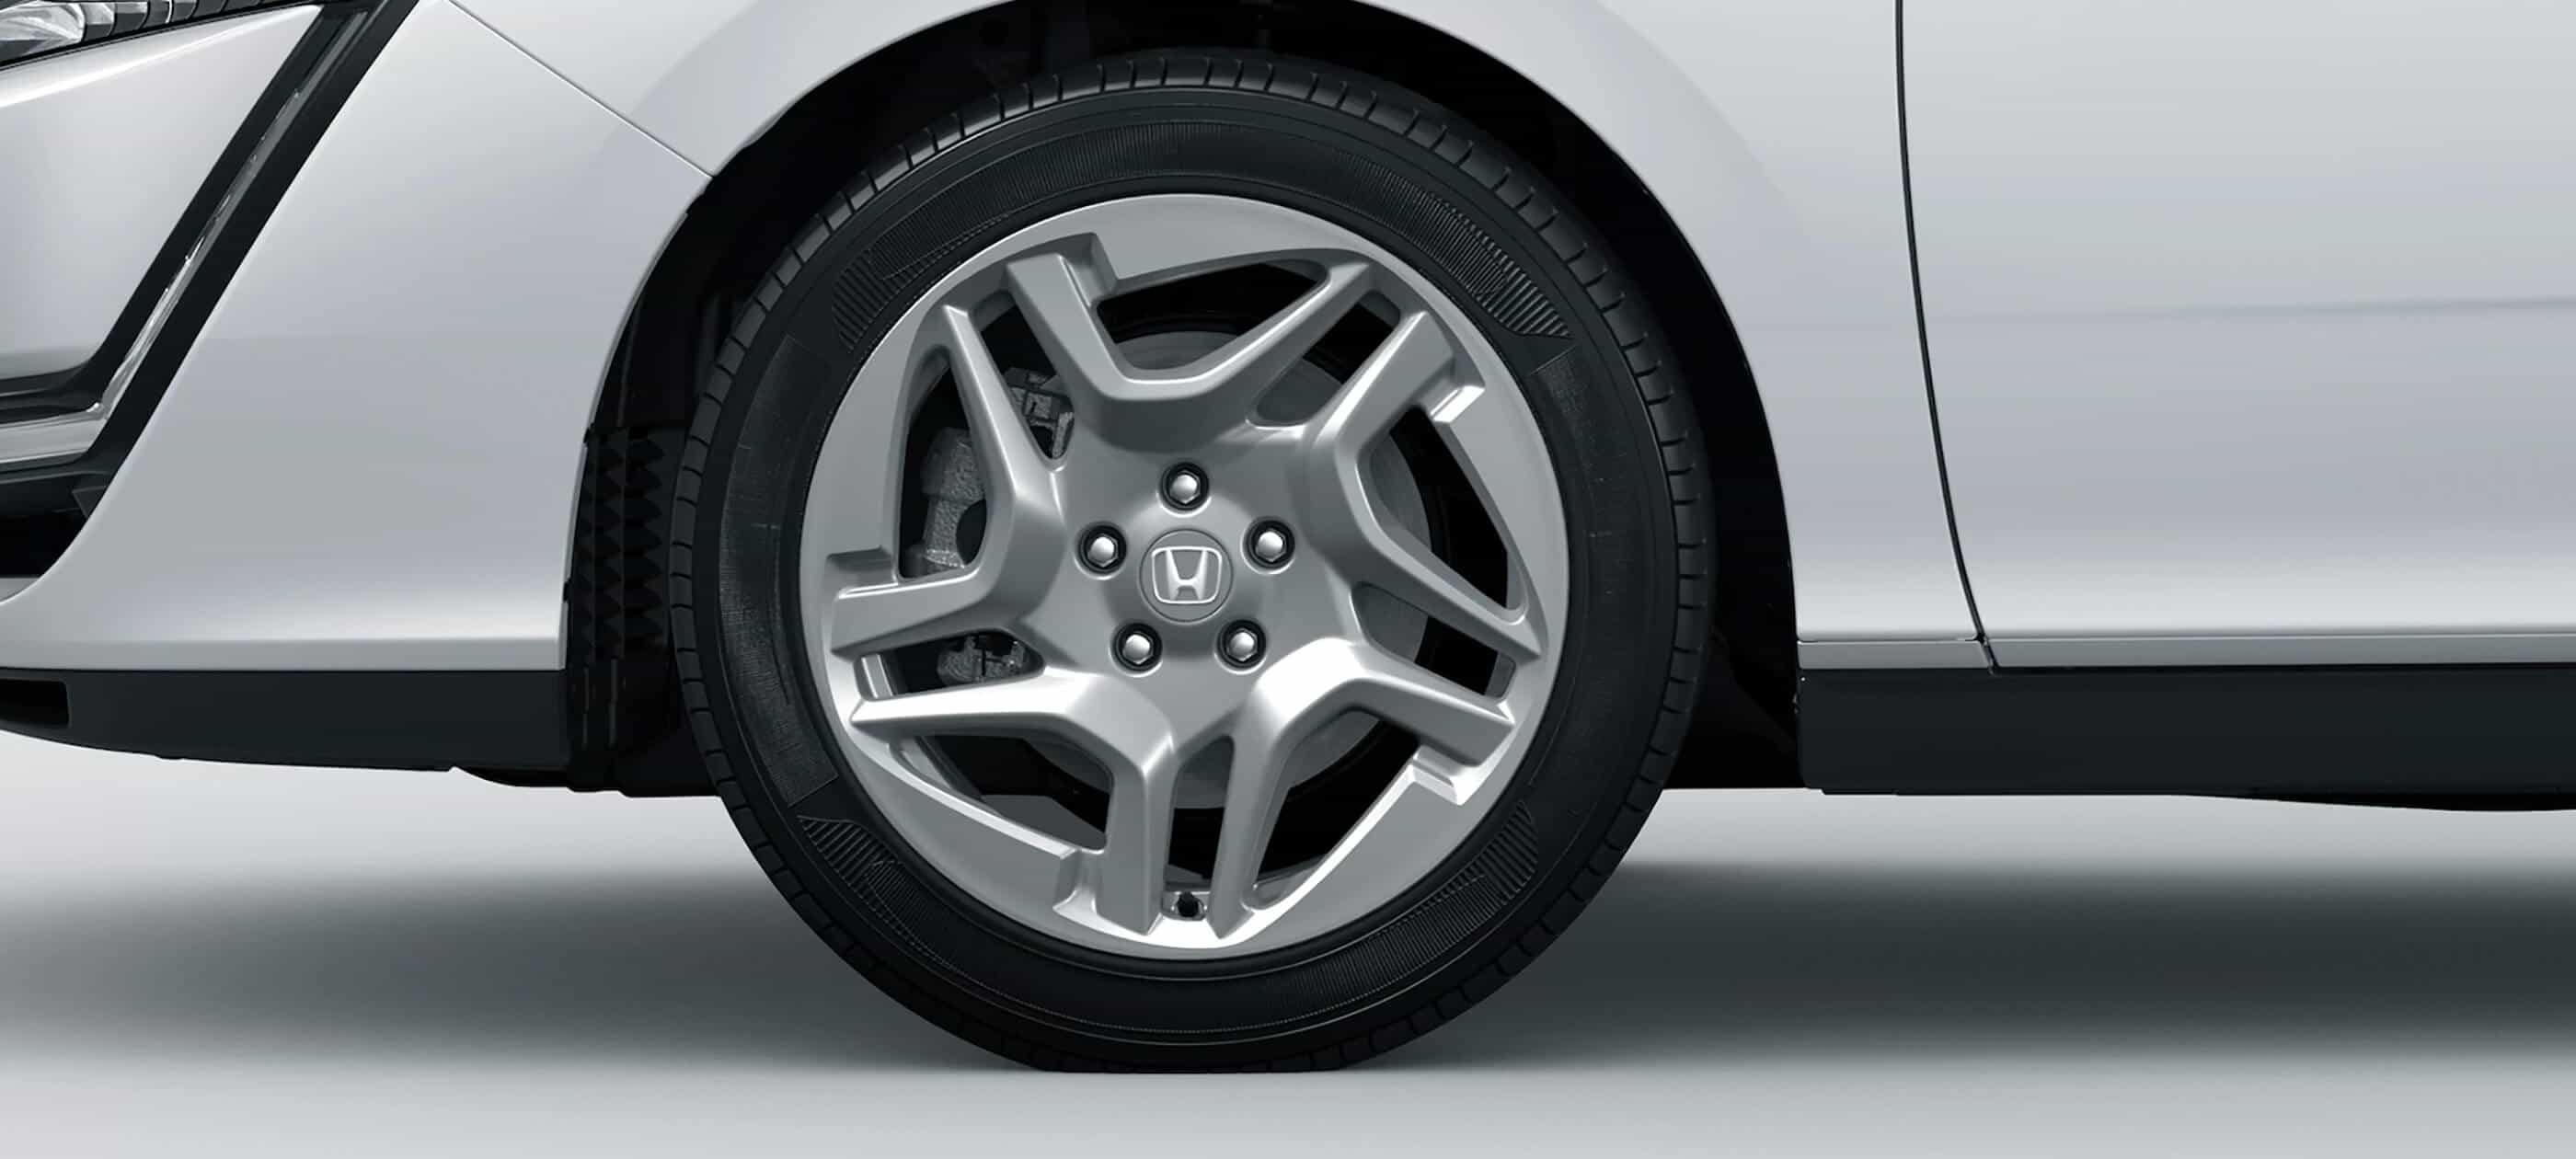 18-Inch Alloy Wheels